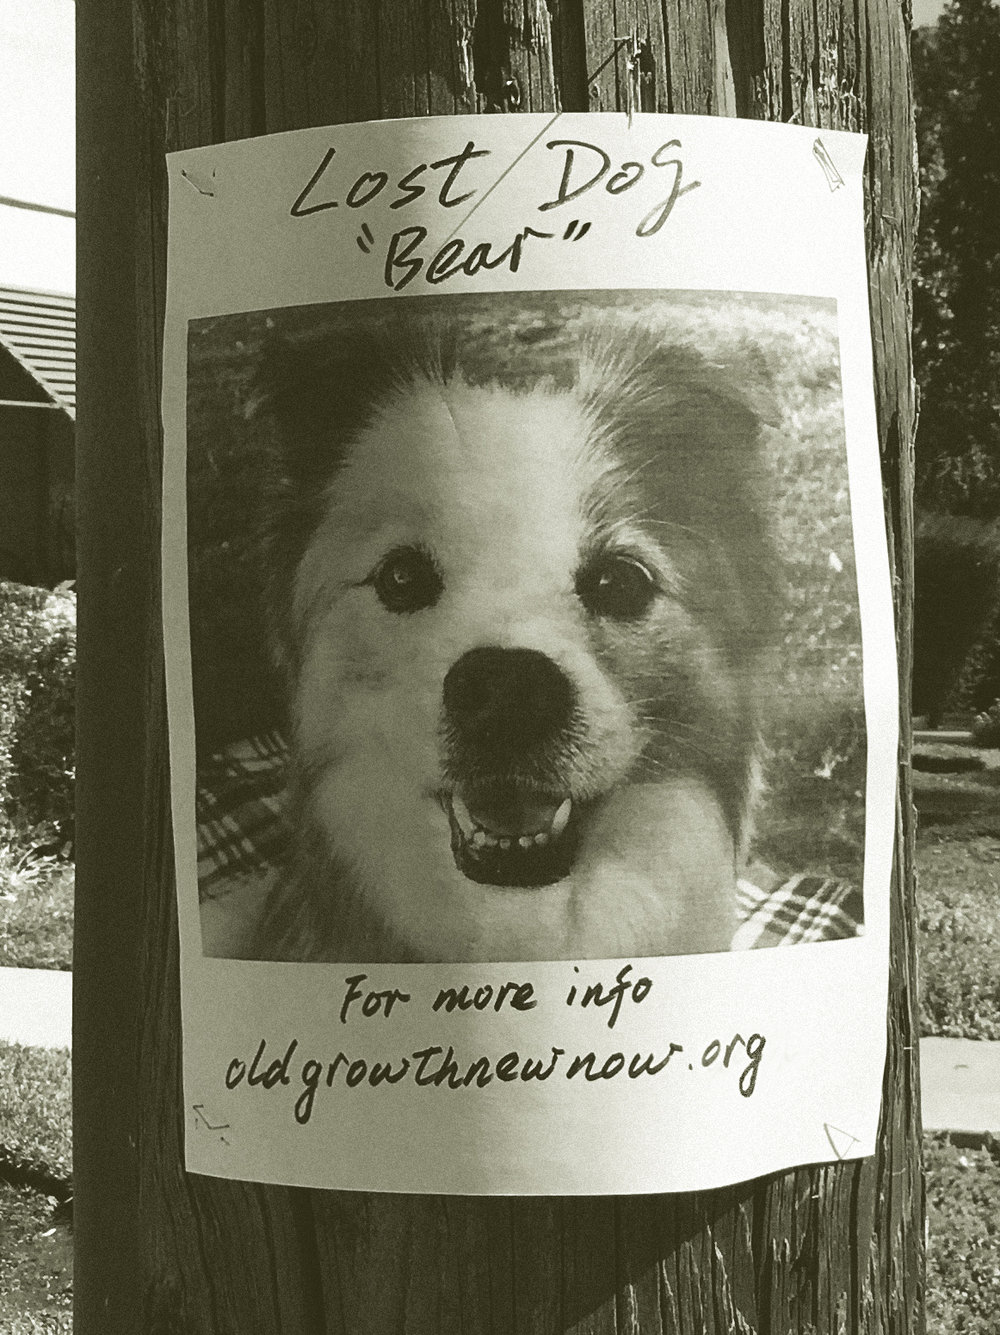 - Lost Dog Flyers turn utility poles into community message boards.